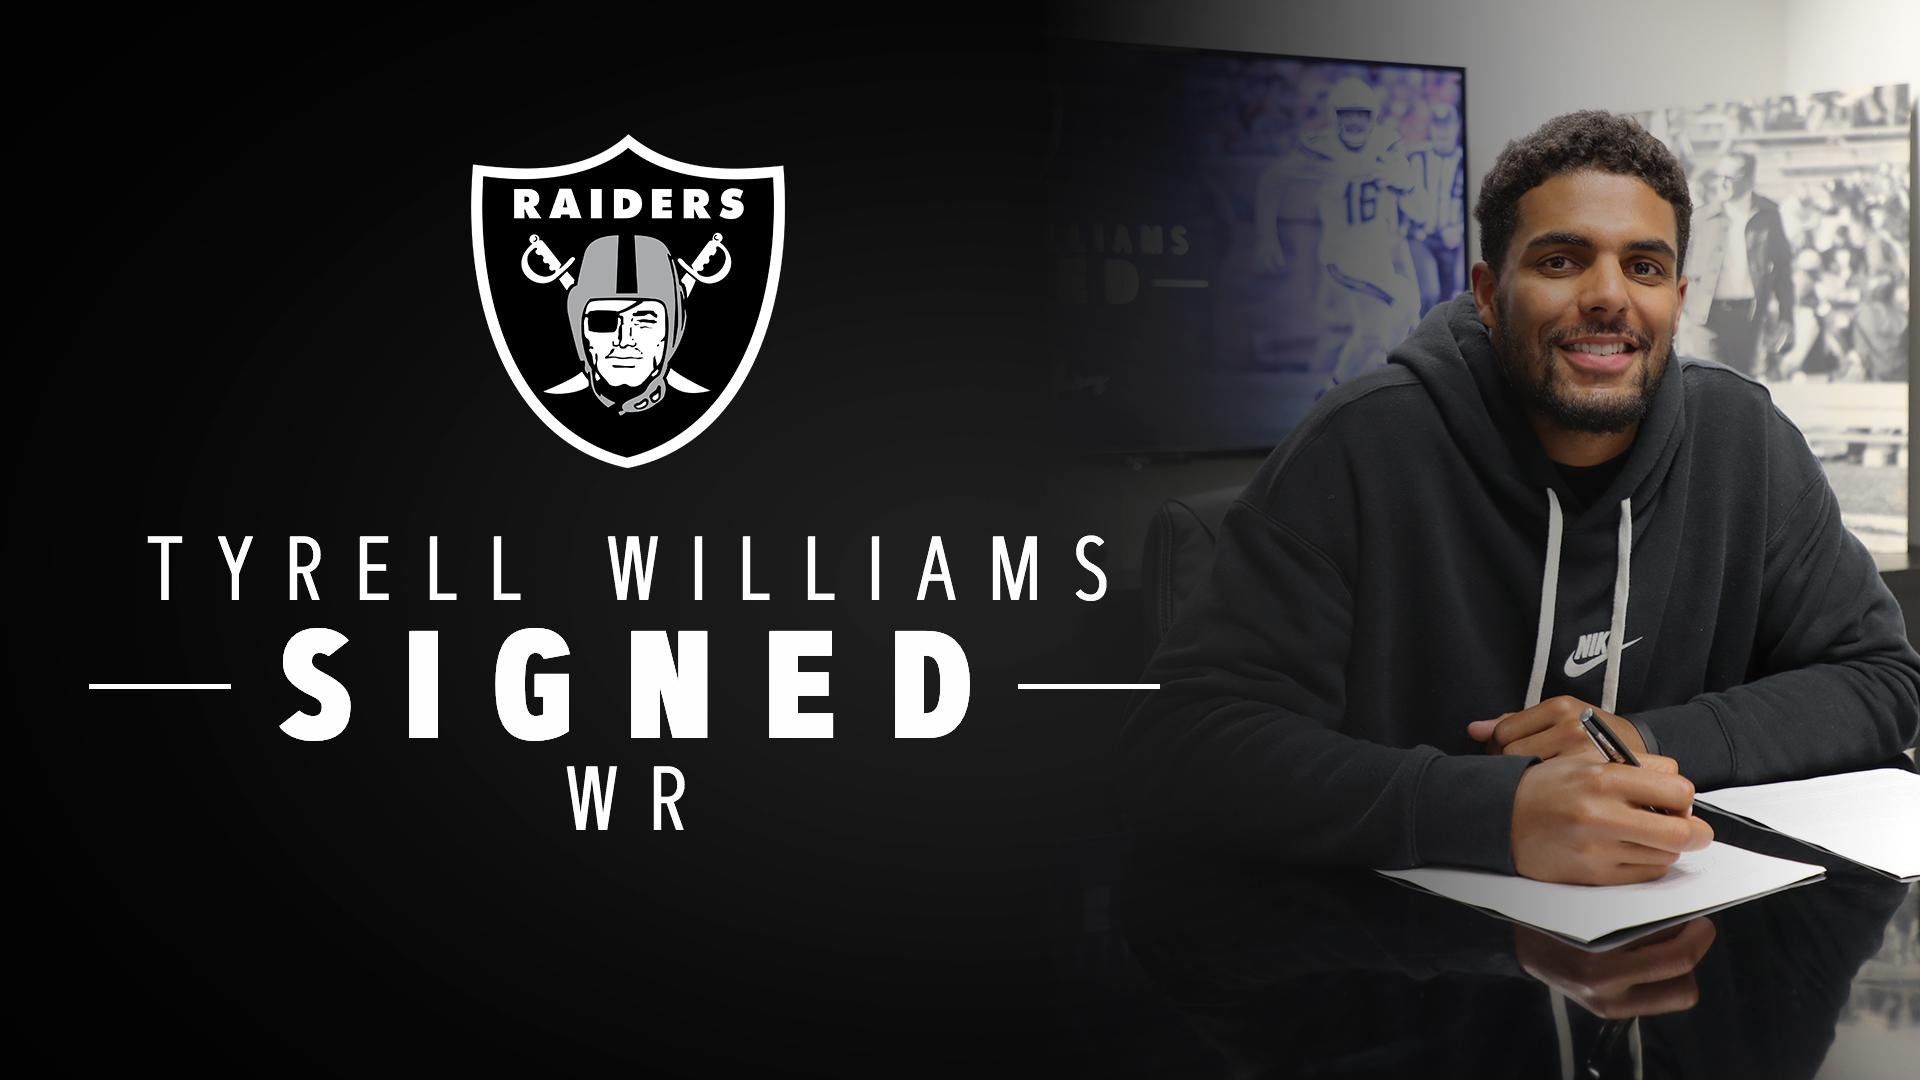 Introducing a new vertical threat.  We have signed WR @TyrellWilliams_: https://t.co/I9WBeva5oI https://t.co/QGGp416kn4